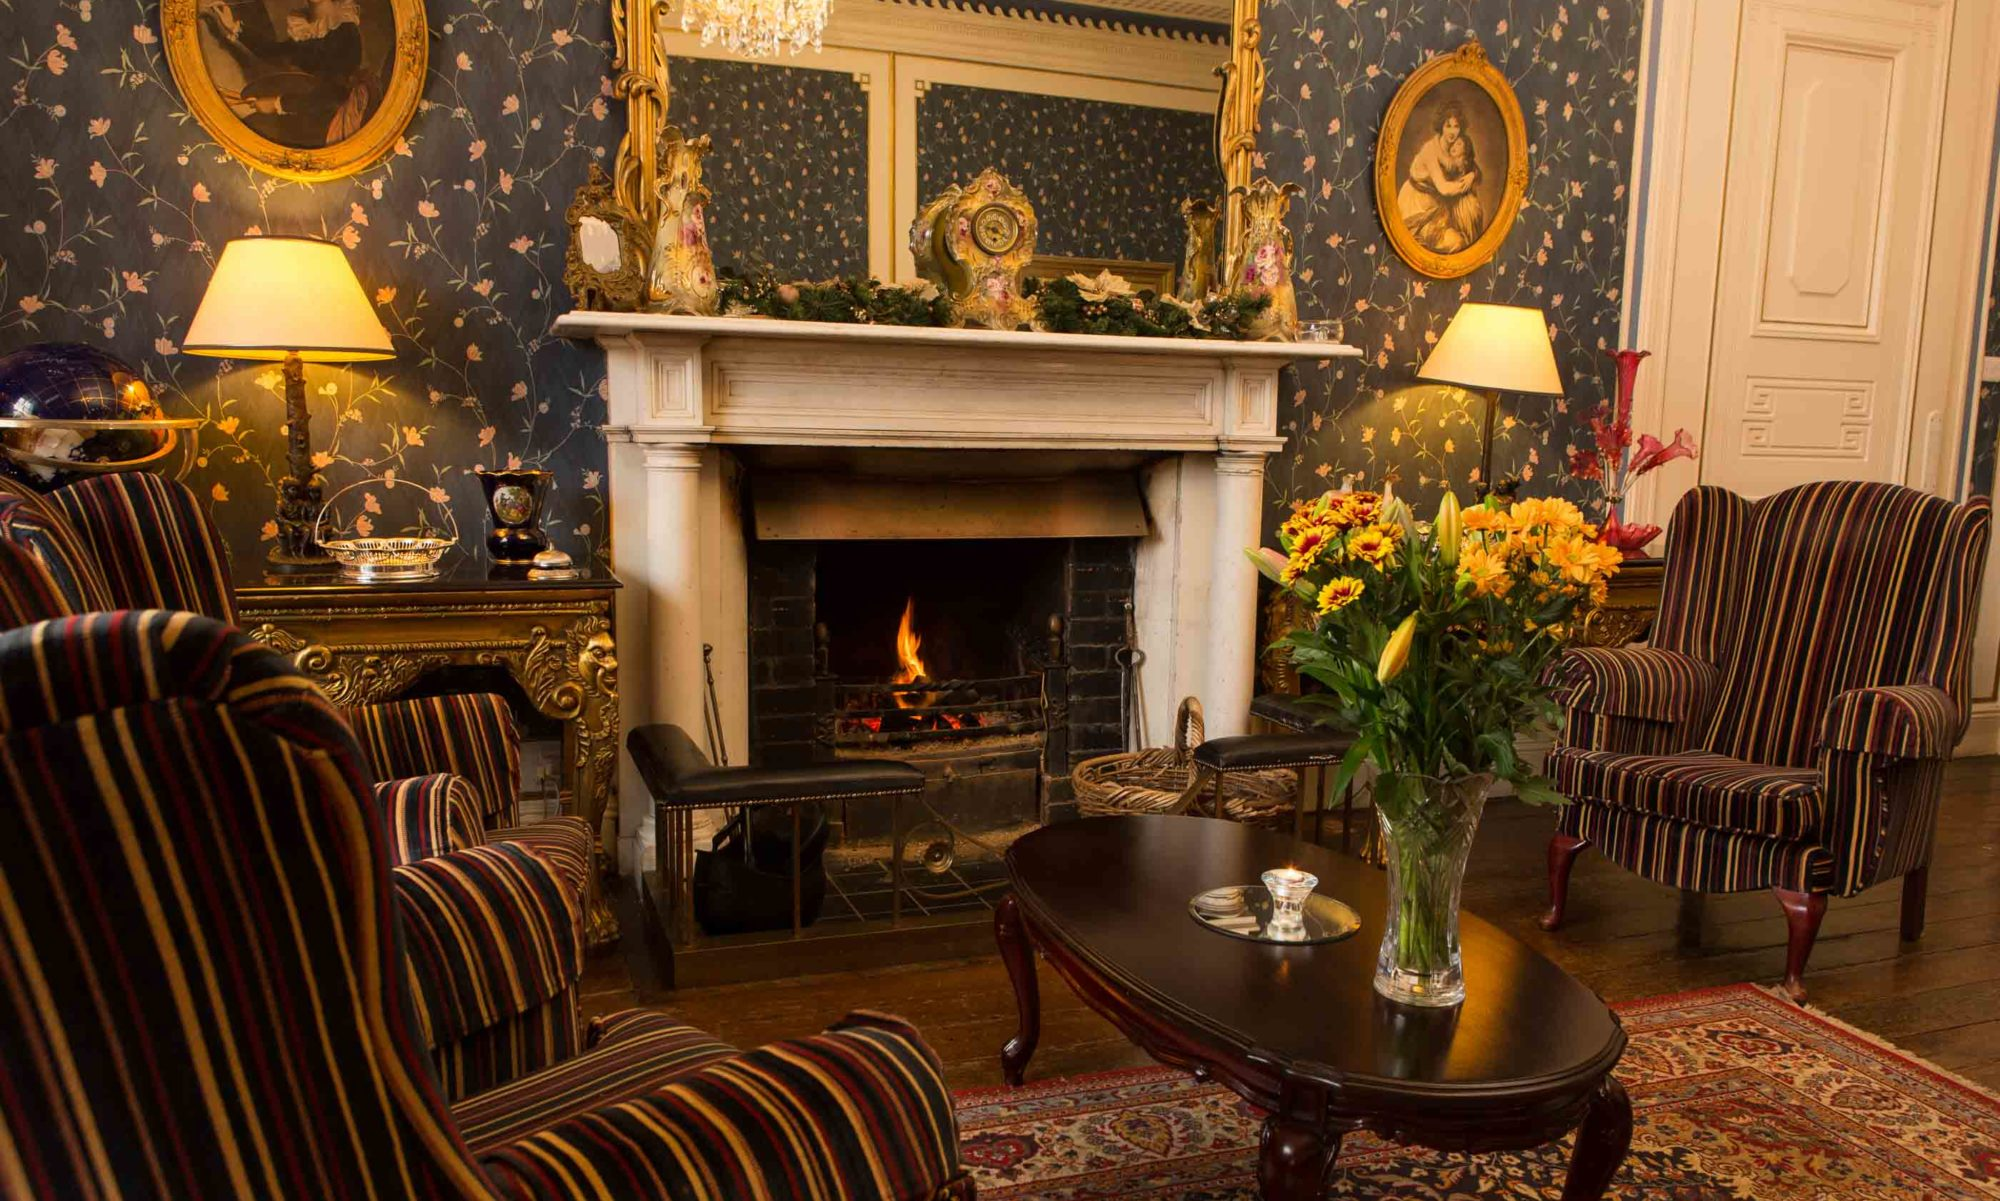 Inch House - Luxury Country House accommodation in Tipperary